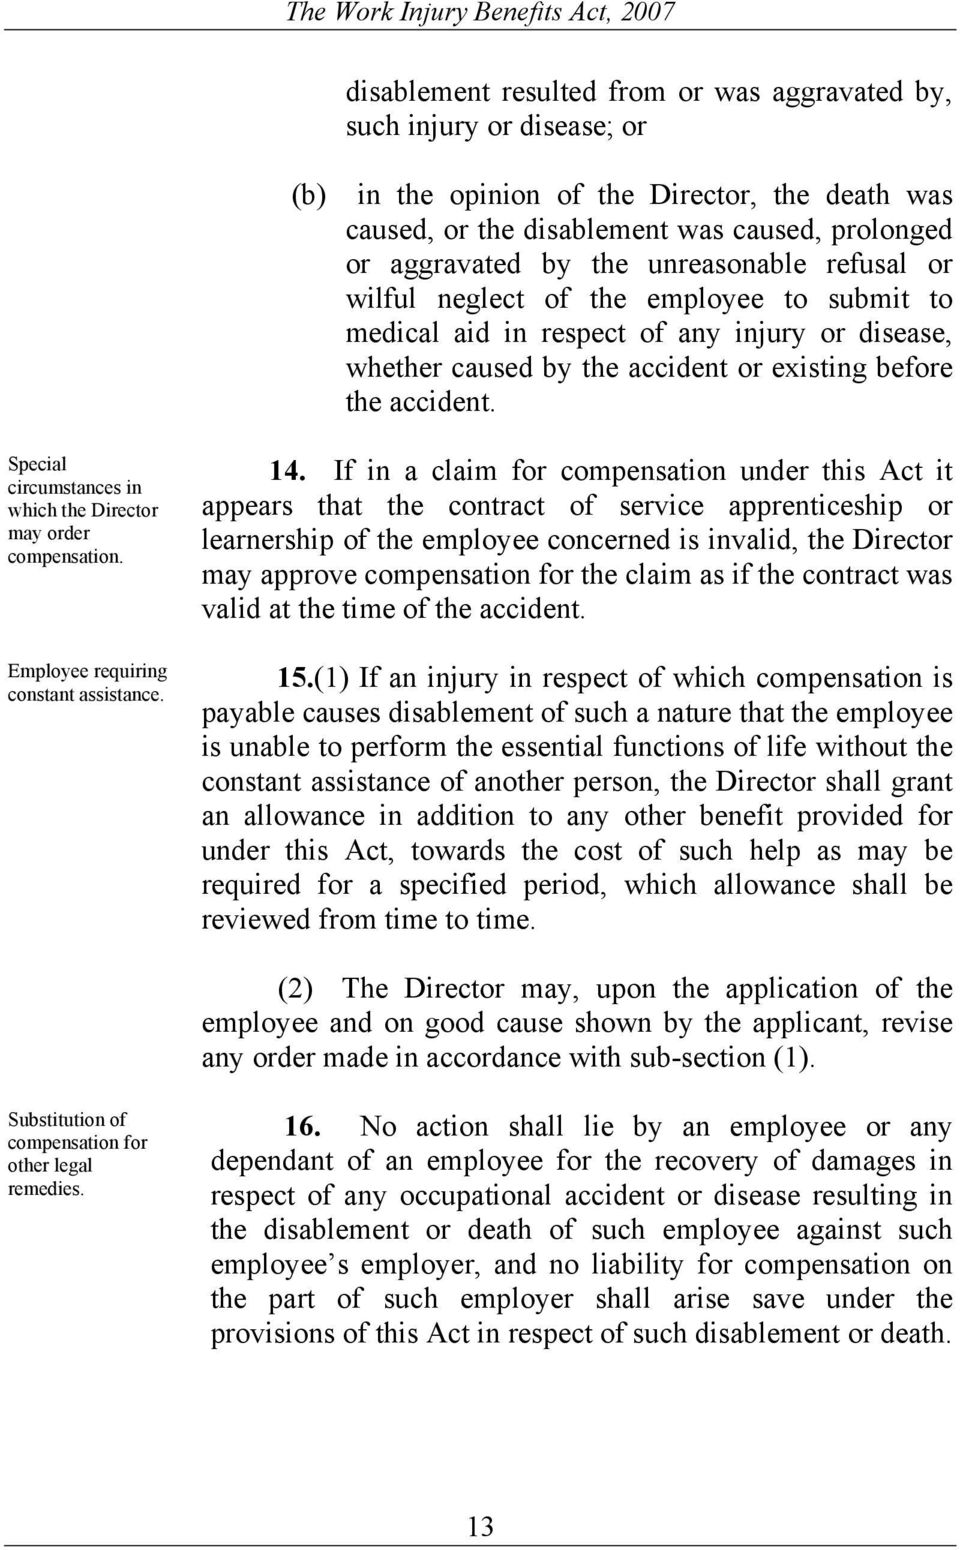 Special circumstances in which the Director may order compensation. Employee requiring constant assistance. 14.